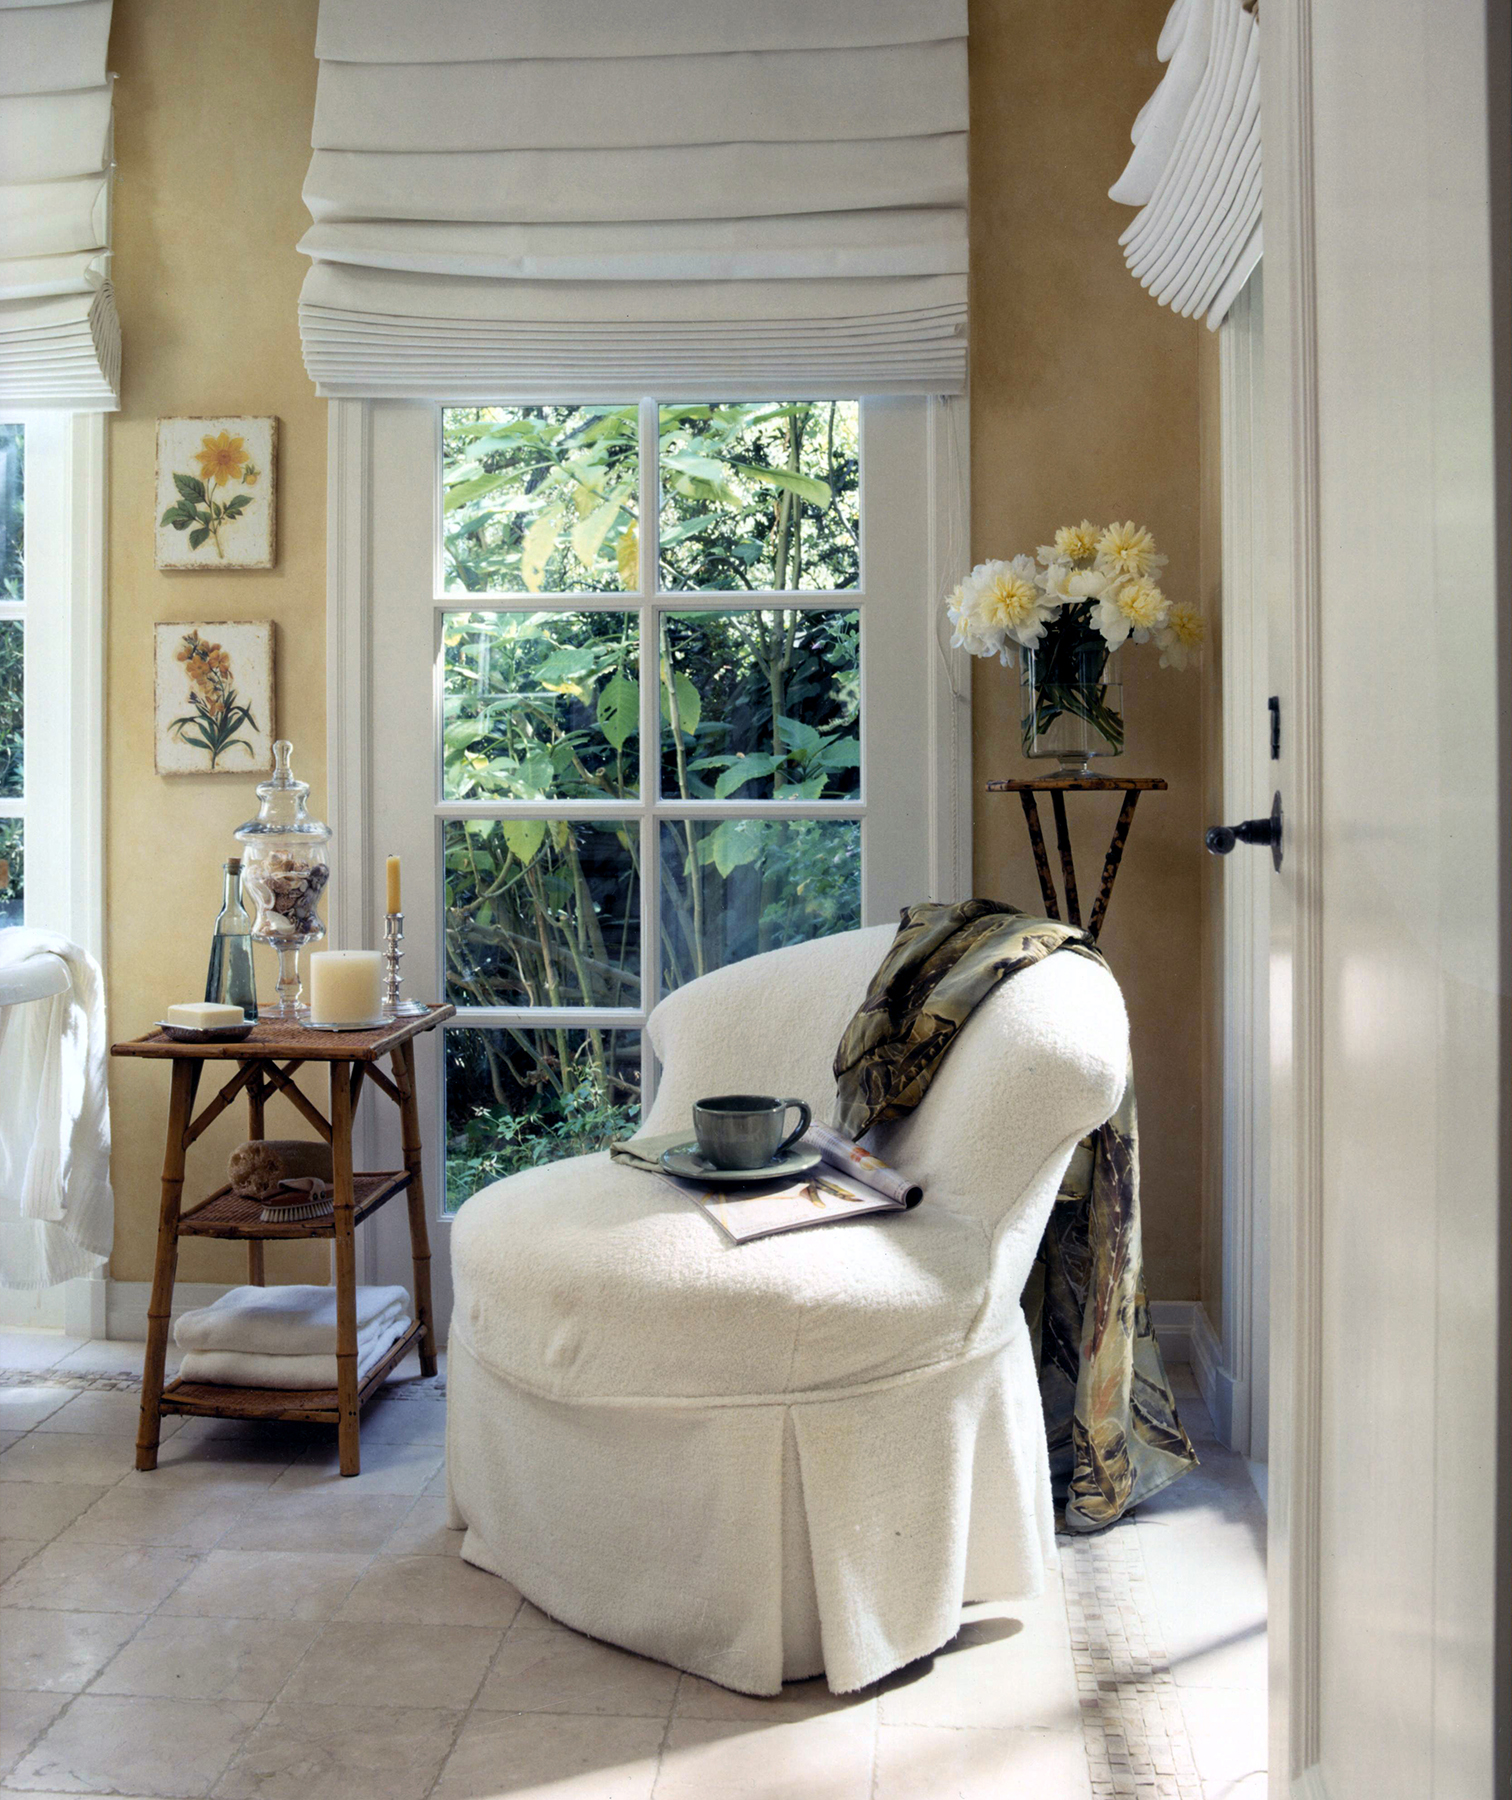 Bathroom with white chair